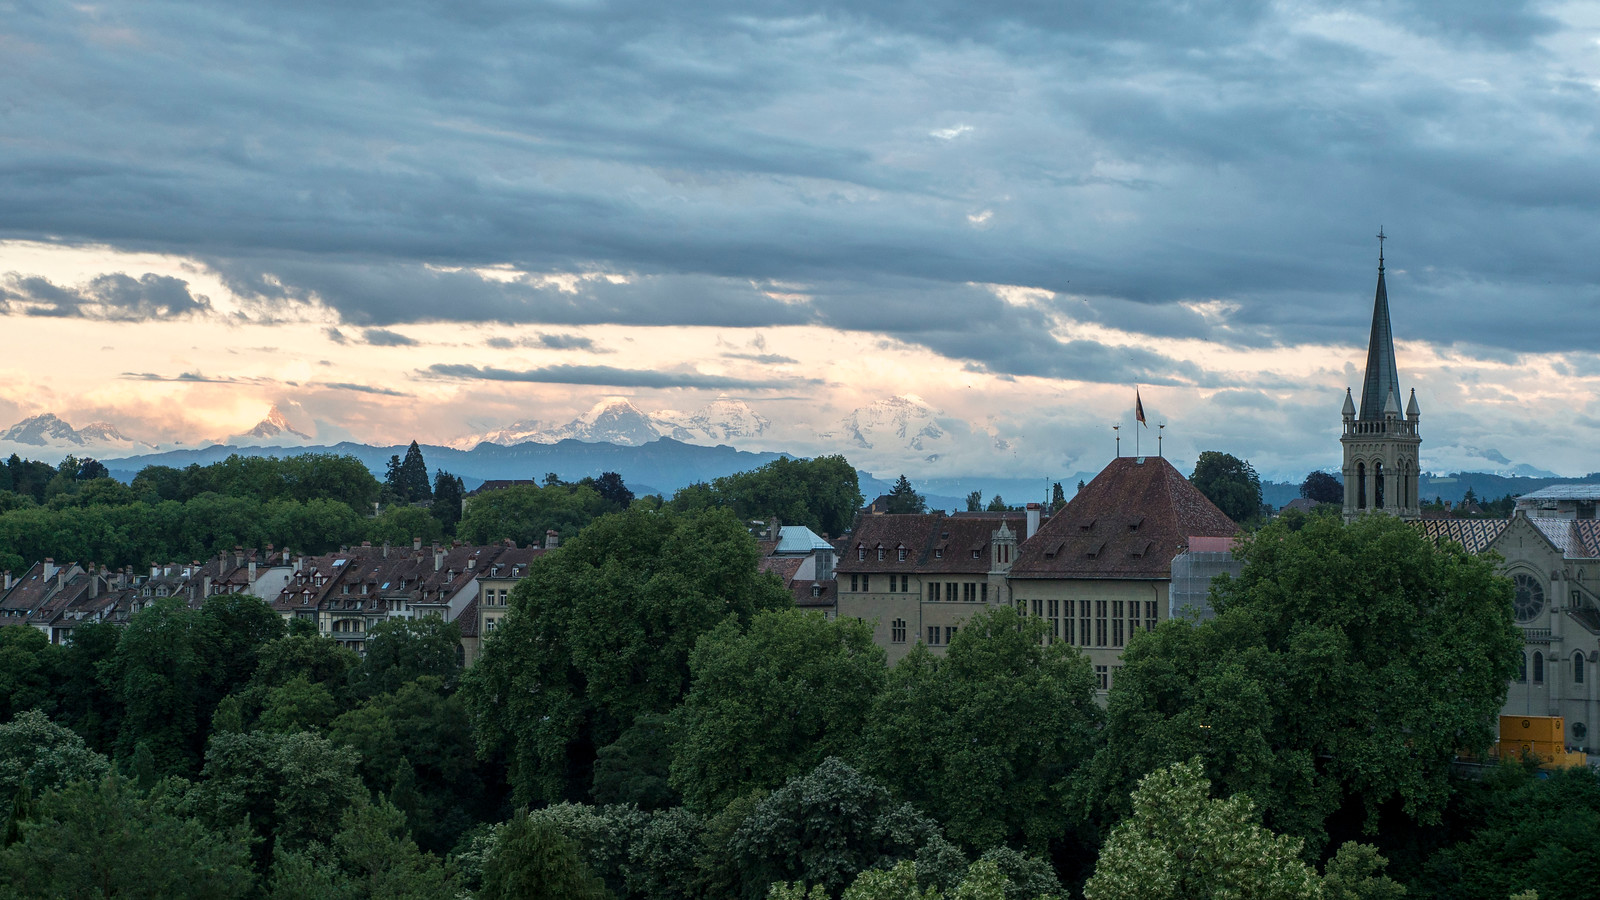 5 Spectacular Things to Do in Bern Switzerland - Bern at dusk